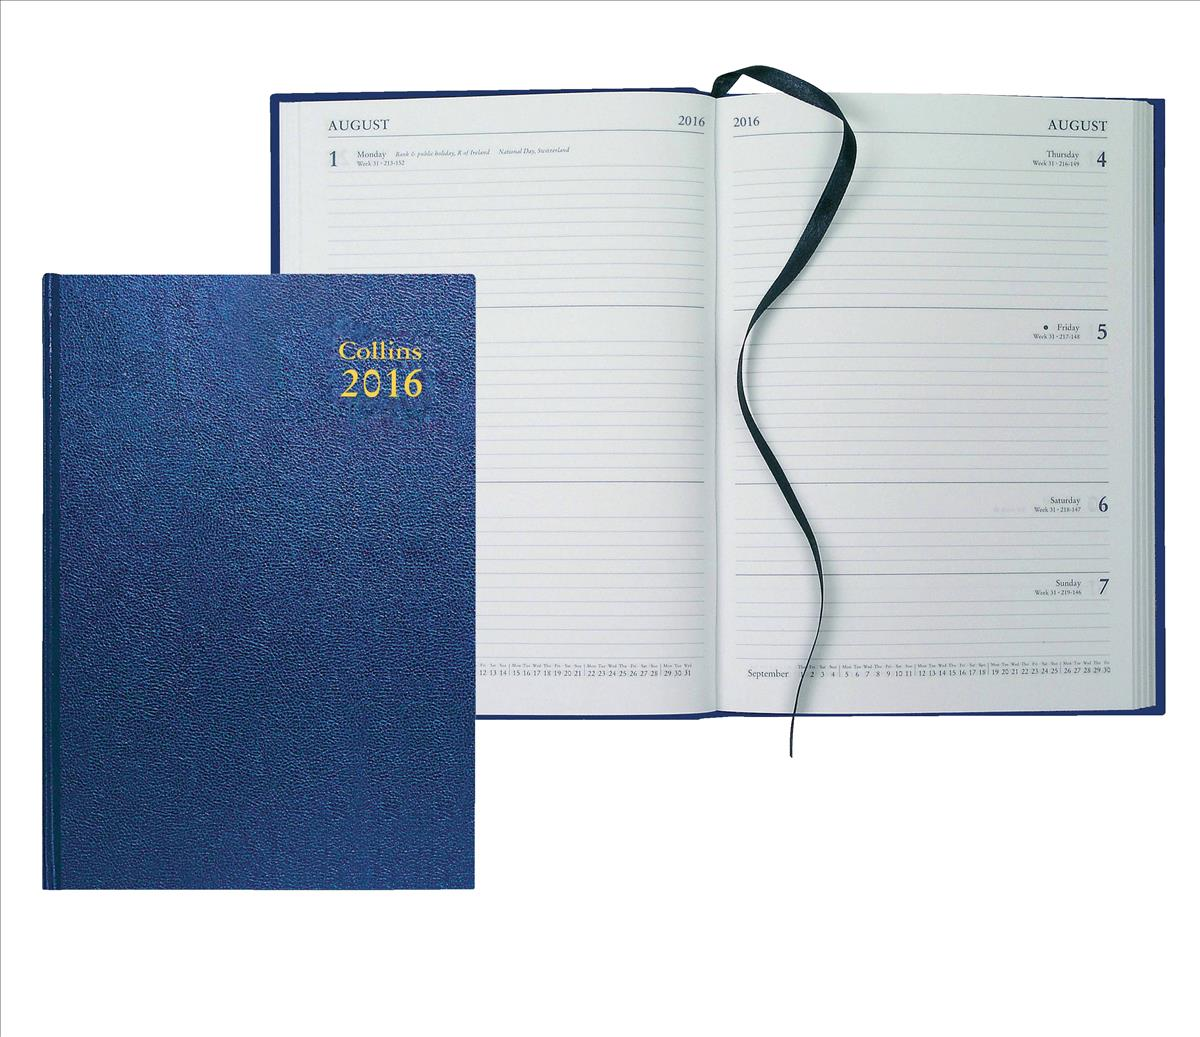 Collins 2016 A5 Desk Diary Week to View Blue 35